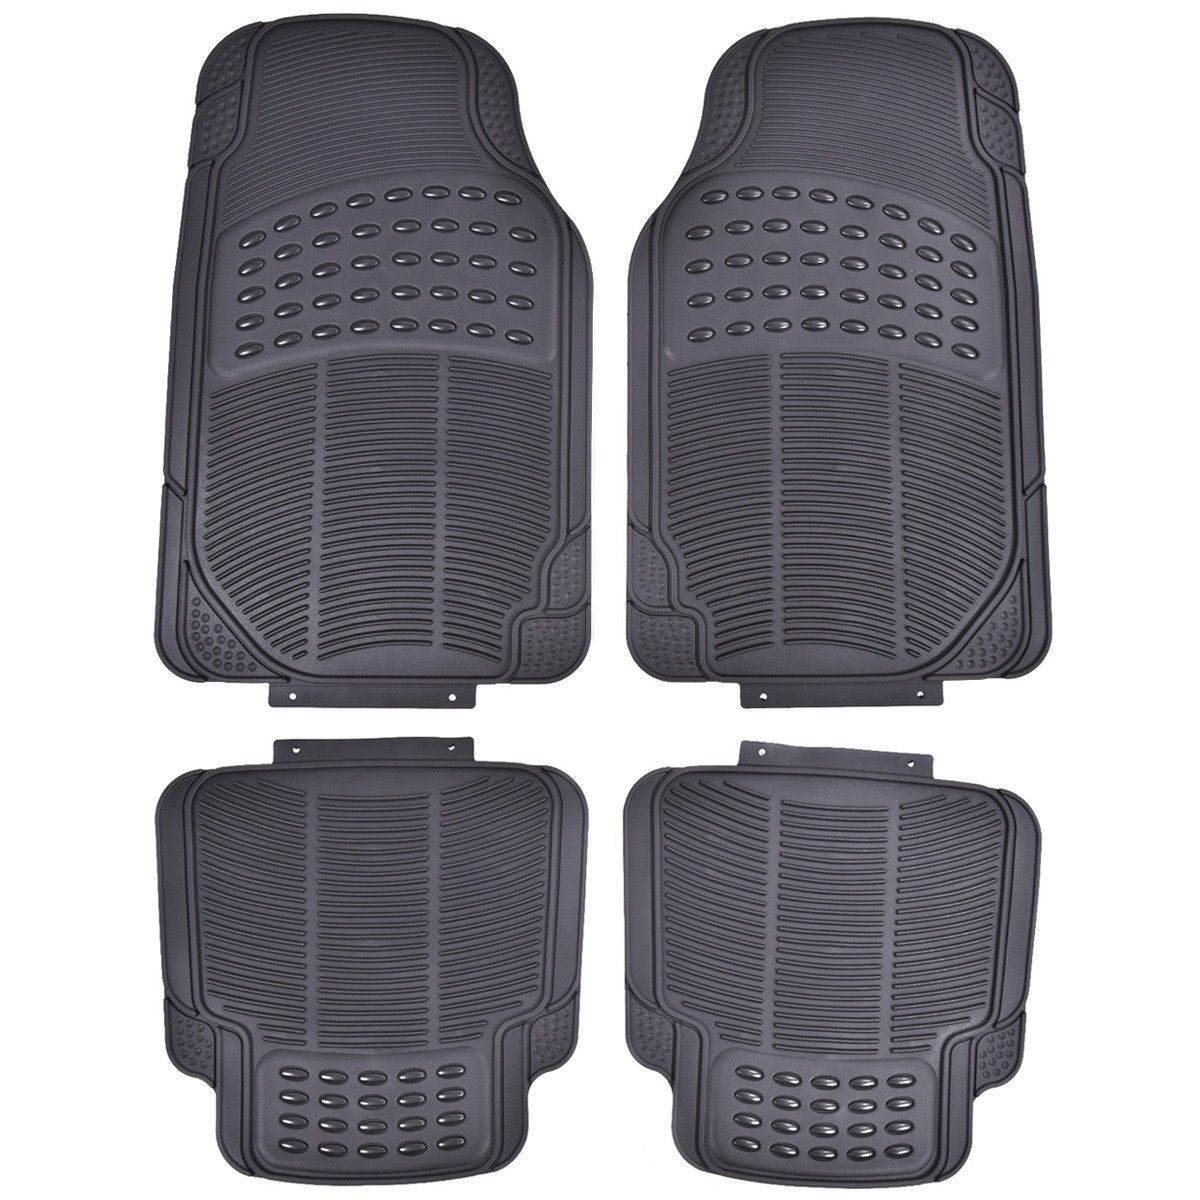 4 PC Cargo Front & Rear Floor Mat All Weather Heavy Duty Universal Cars Protection